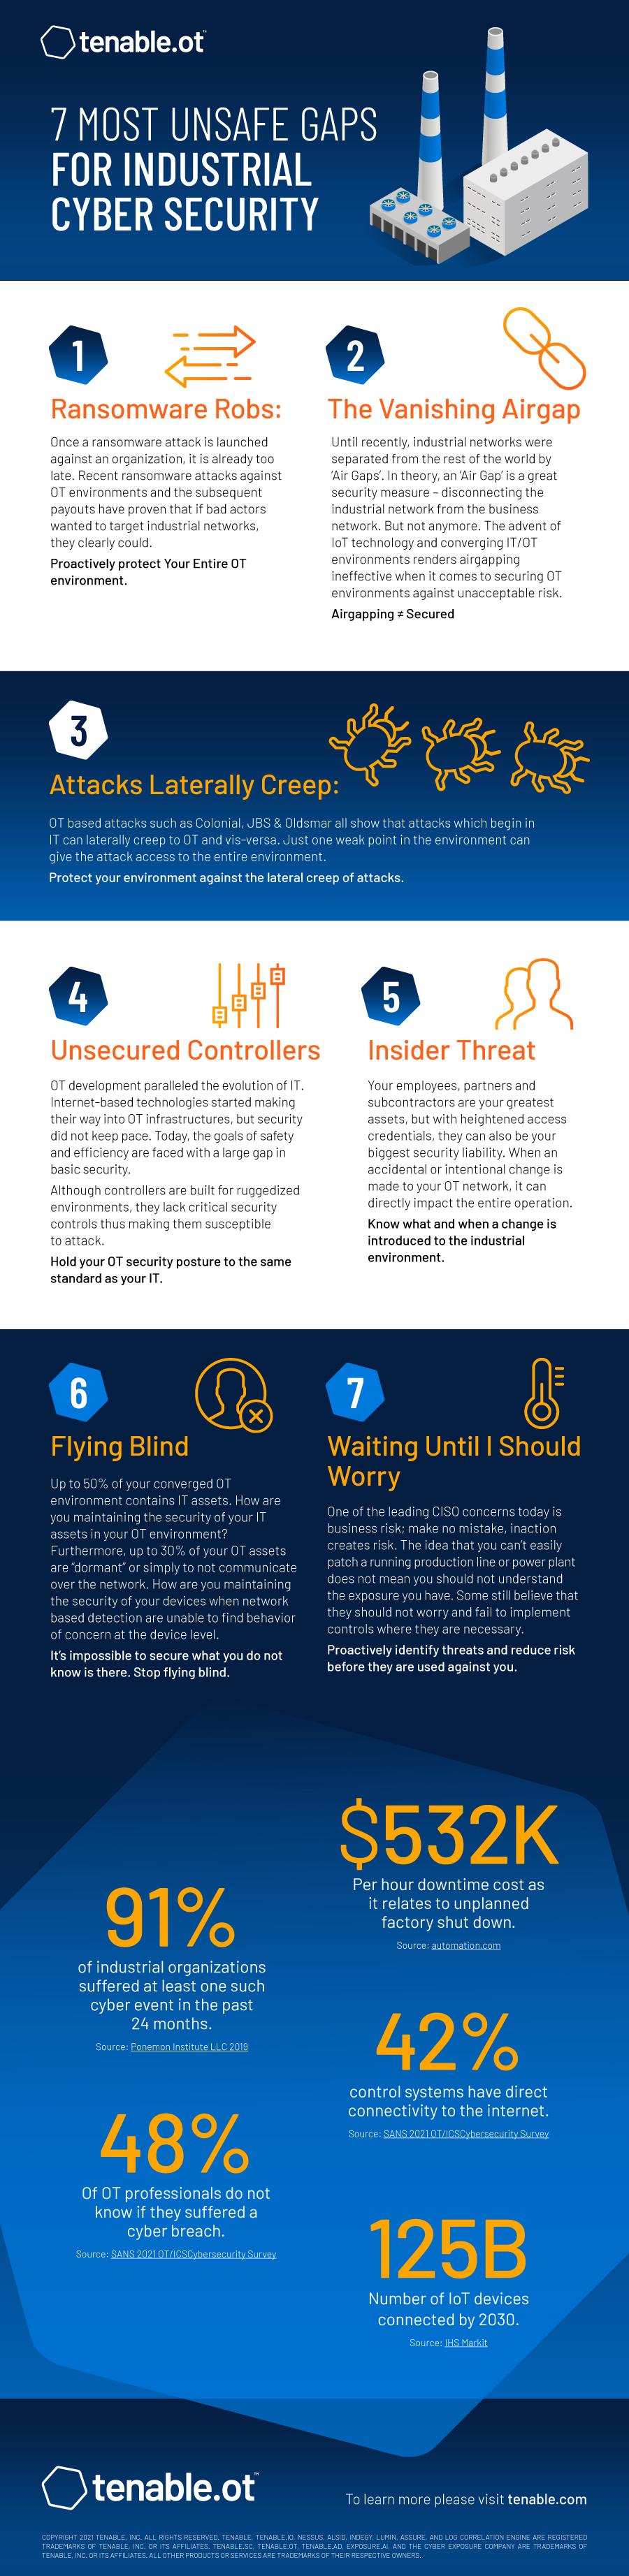 7 Most Unsafe Gaps for Industrial Cybersecurity Infographic